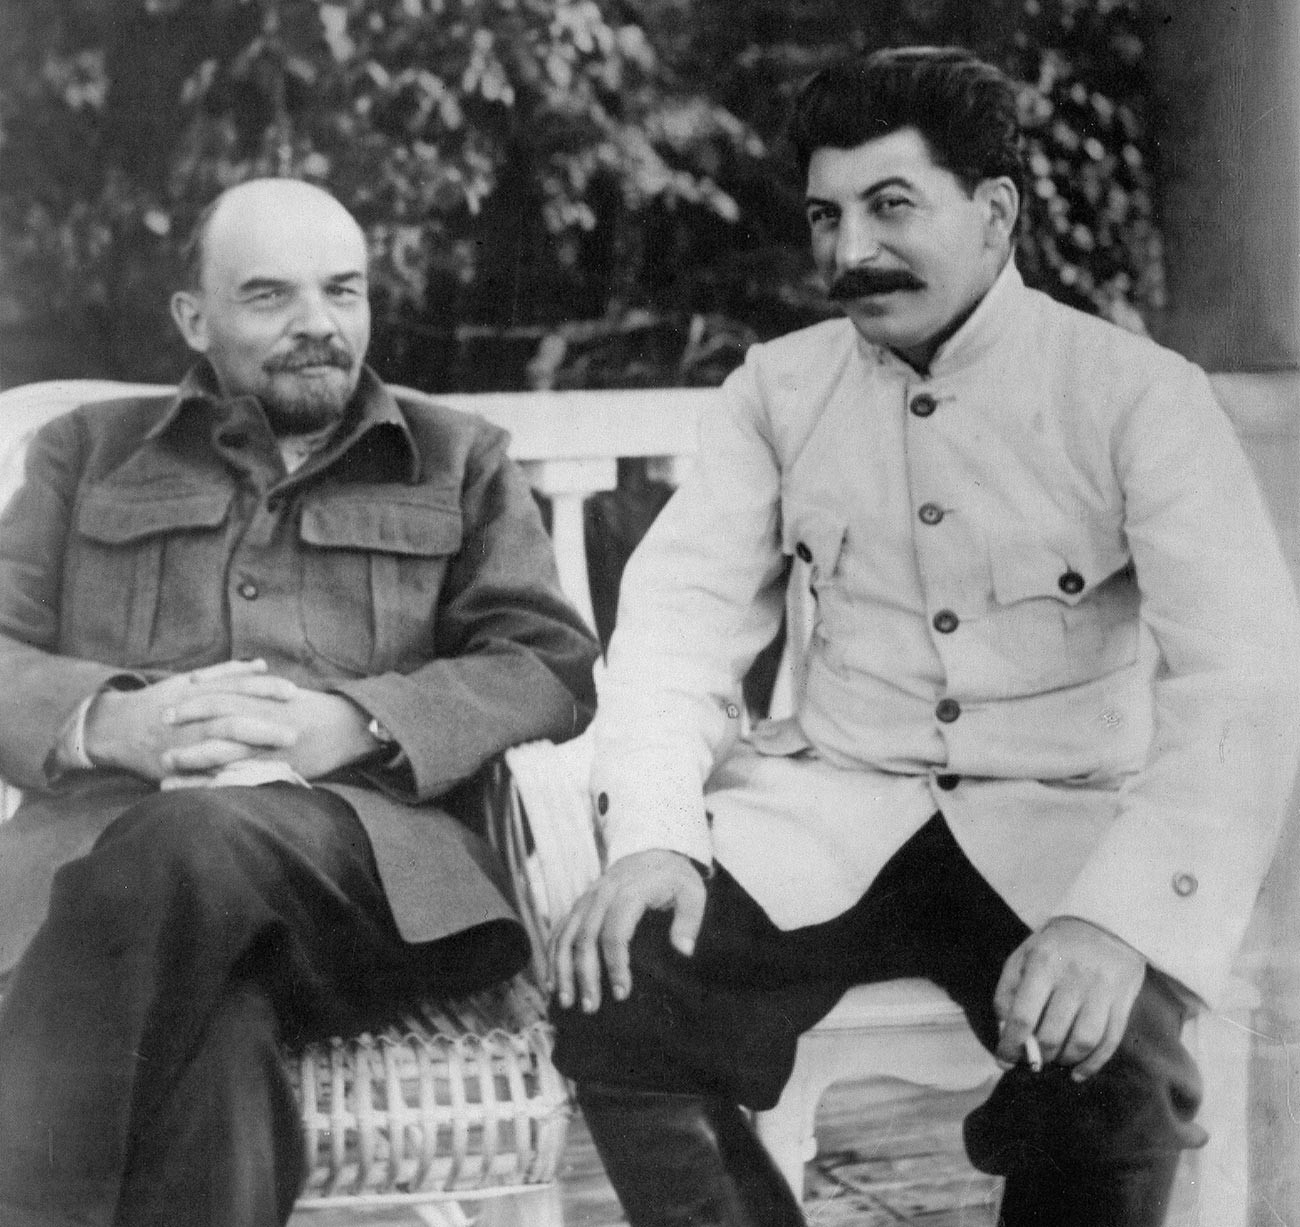 Lenin and Stalin, circa the 1920s.